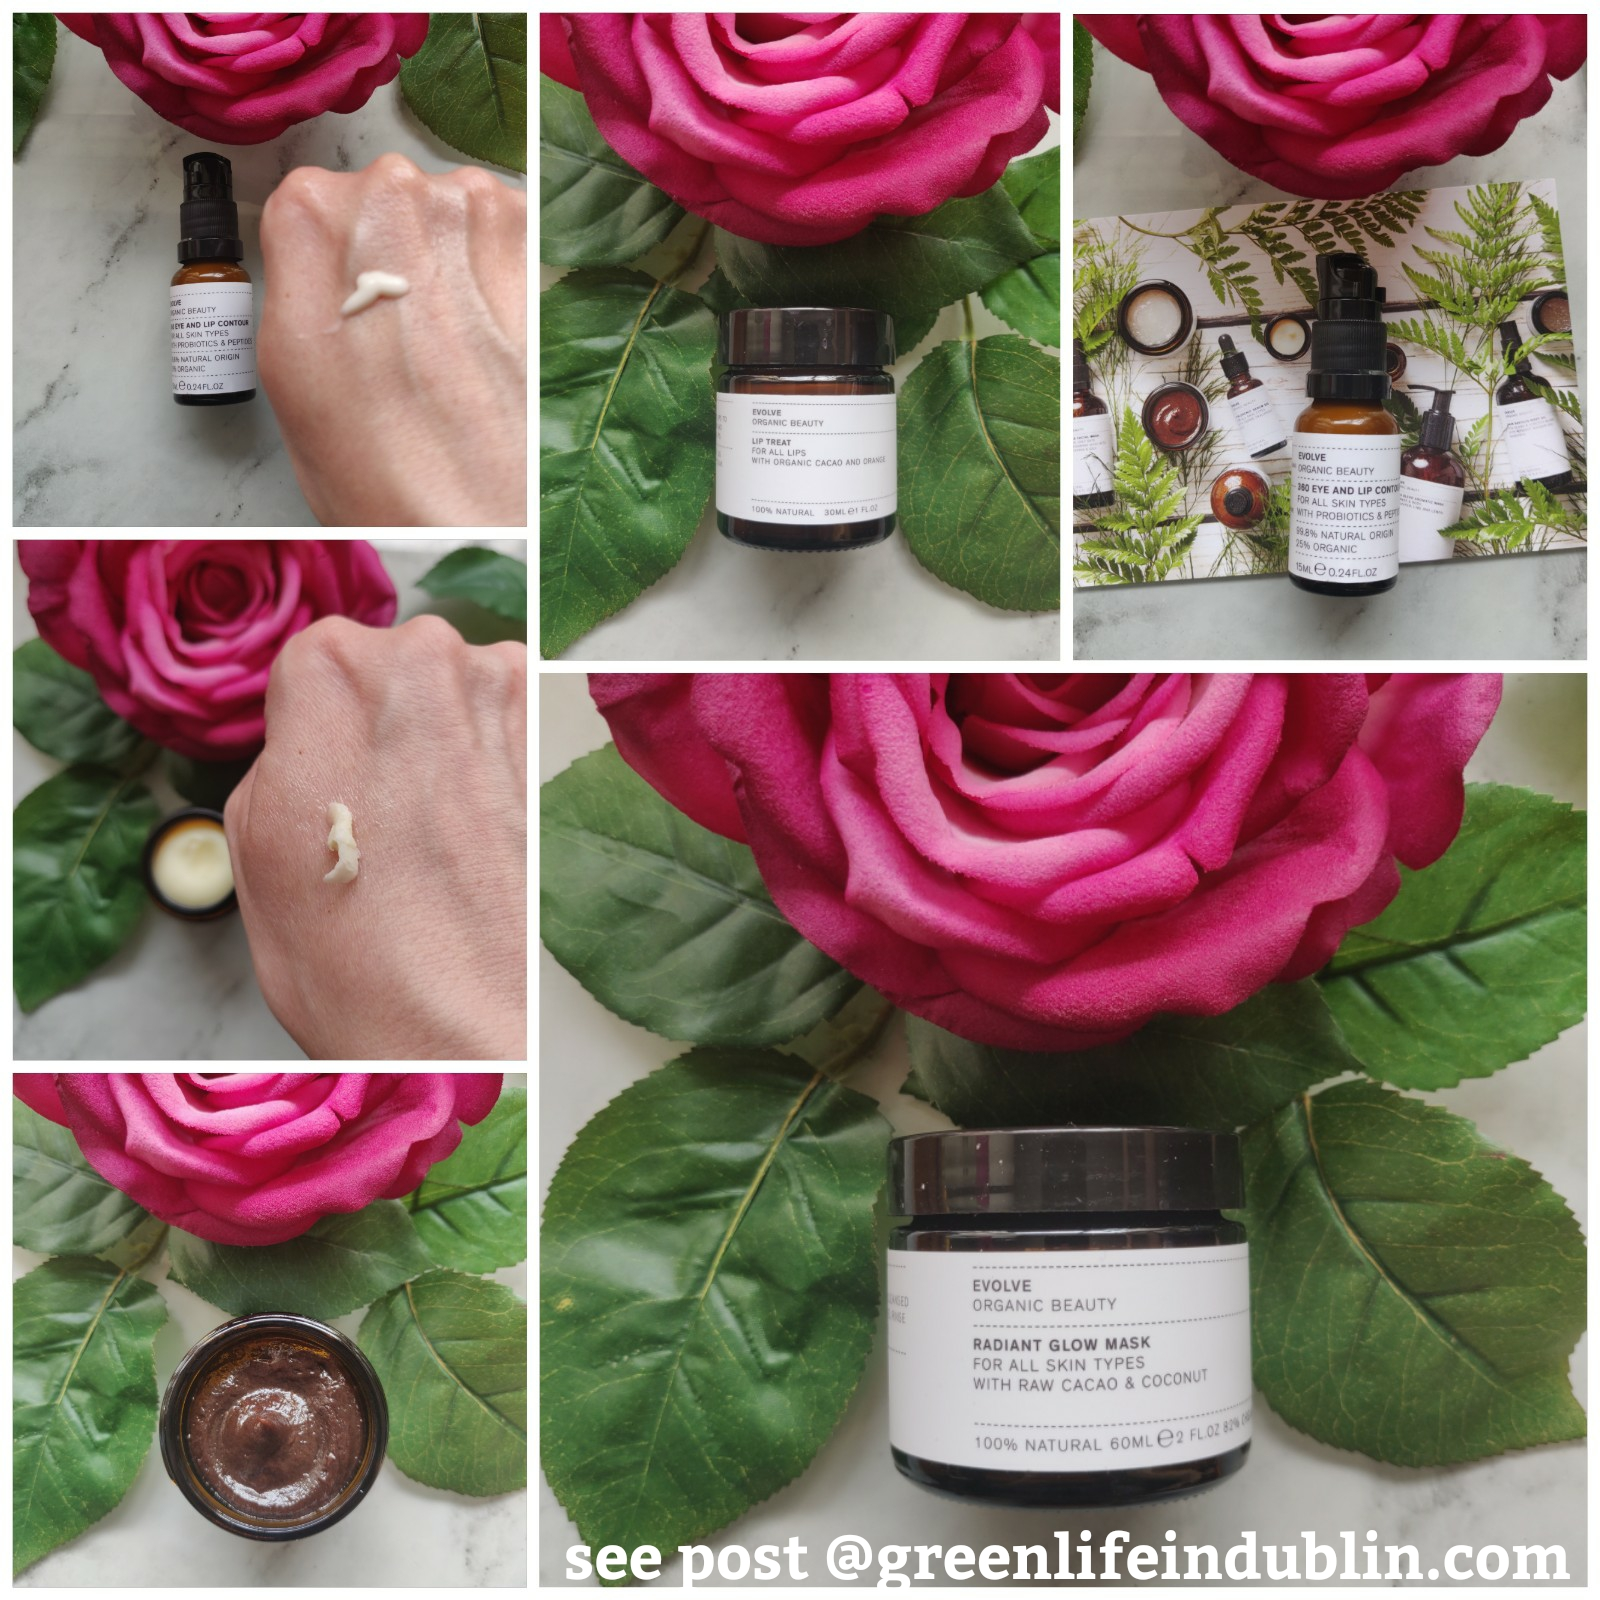 Evolve Organic Beauty products